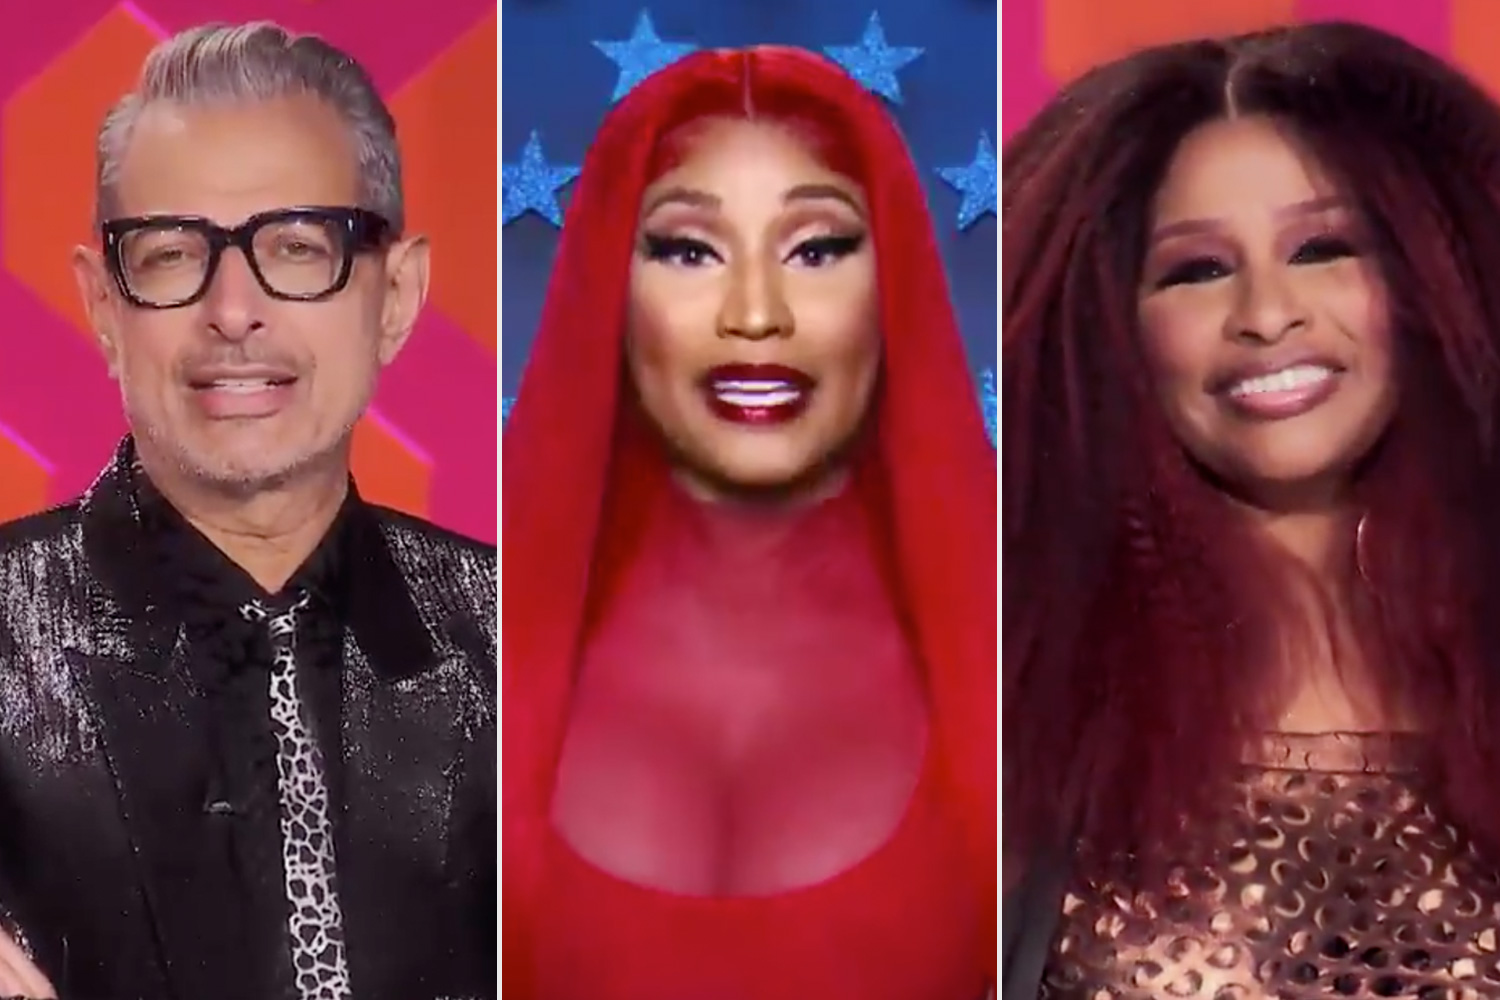 Chaka Khan, Jeff Goldblum, and Nicki Minaj guest judge on RuPaul's Drag Race